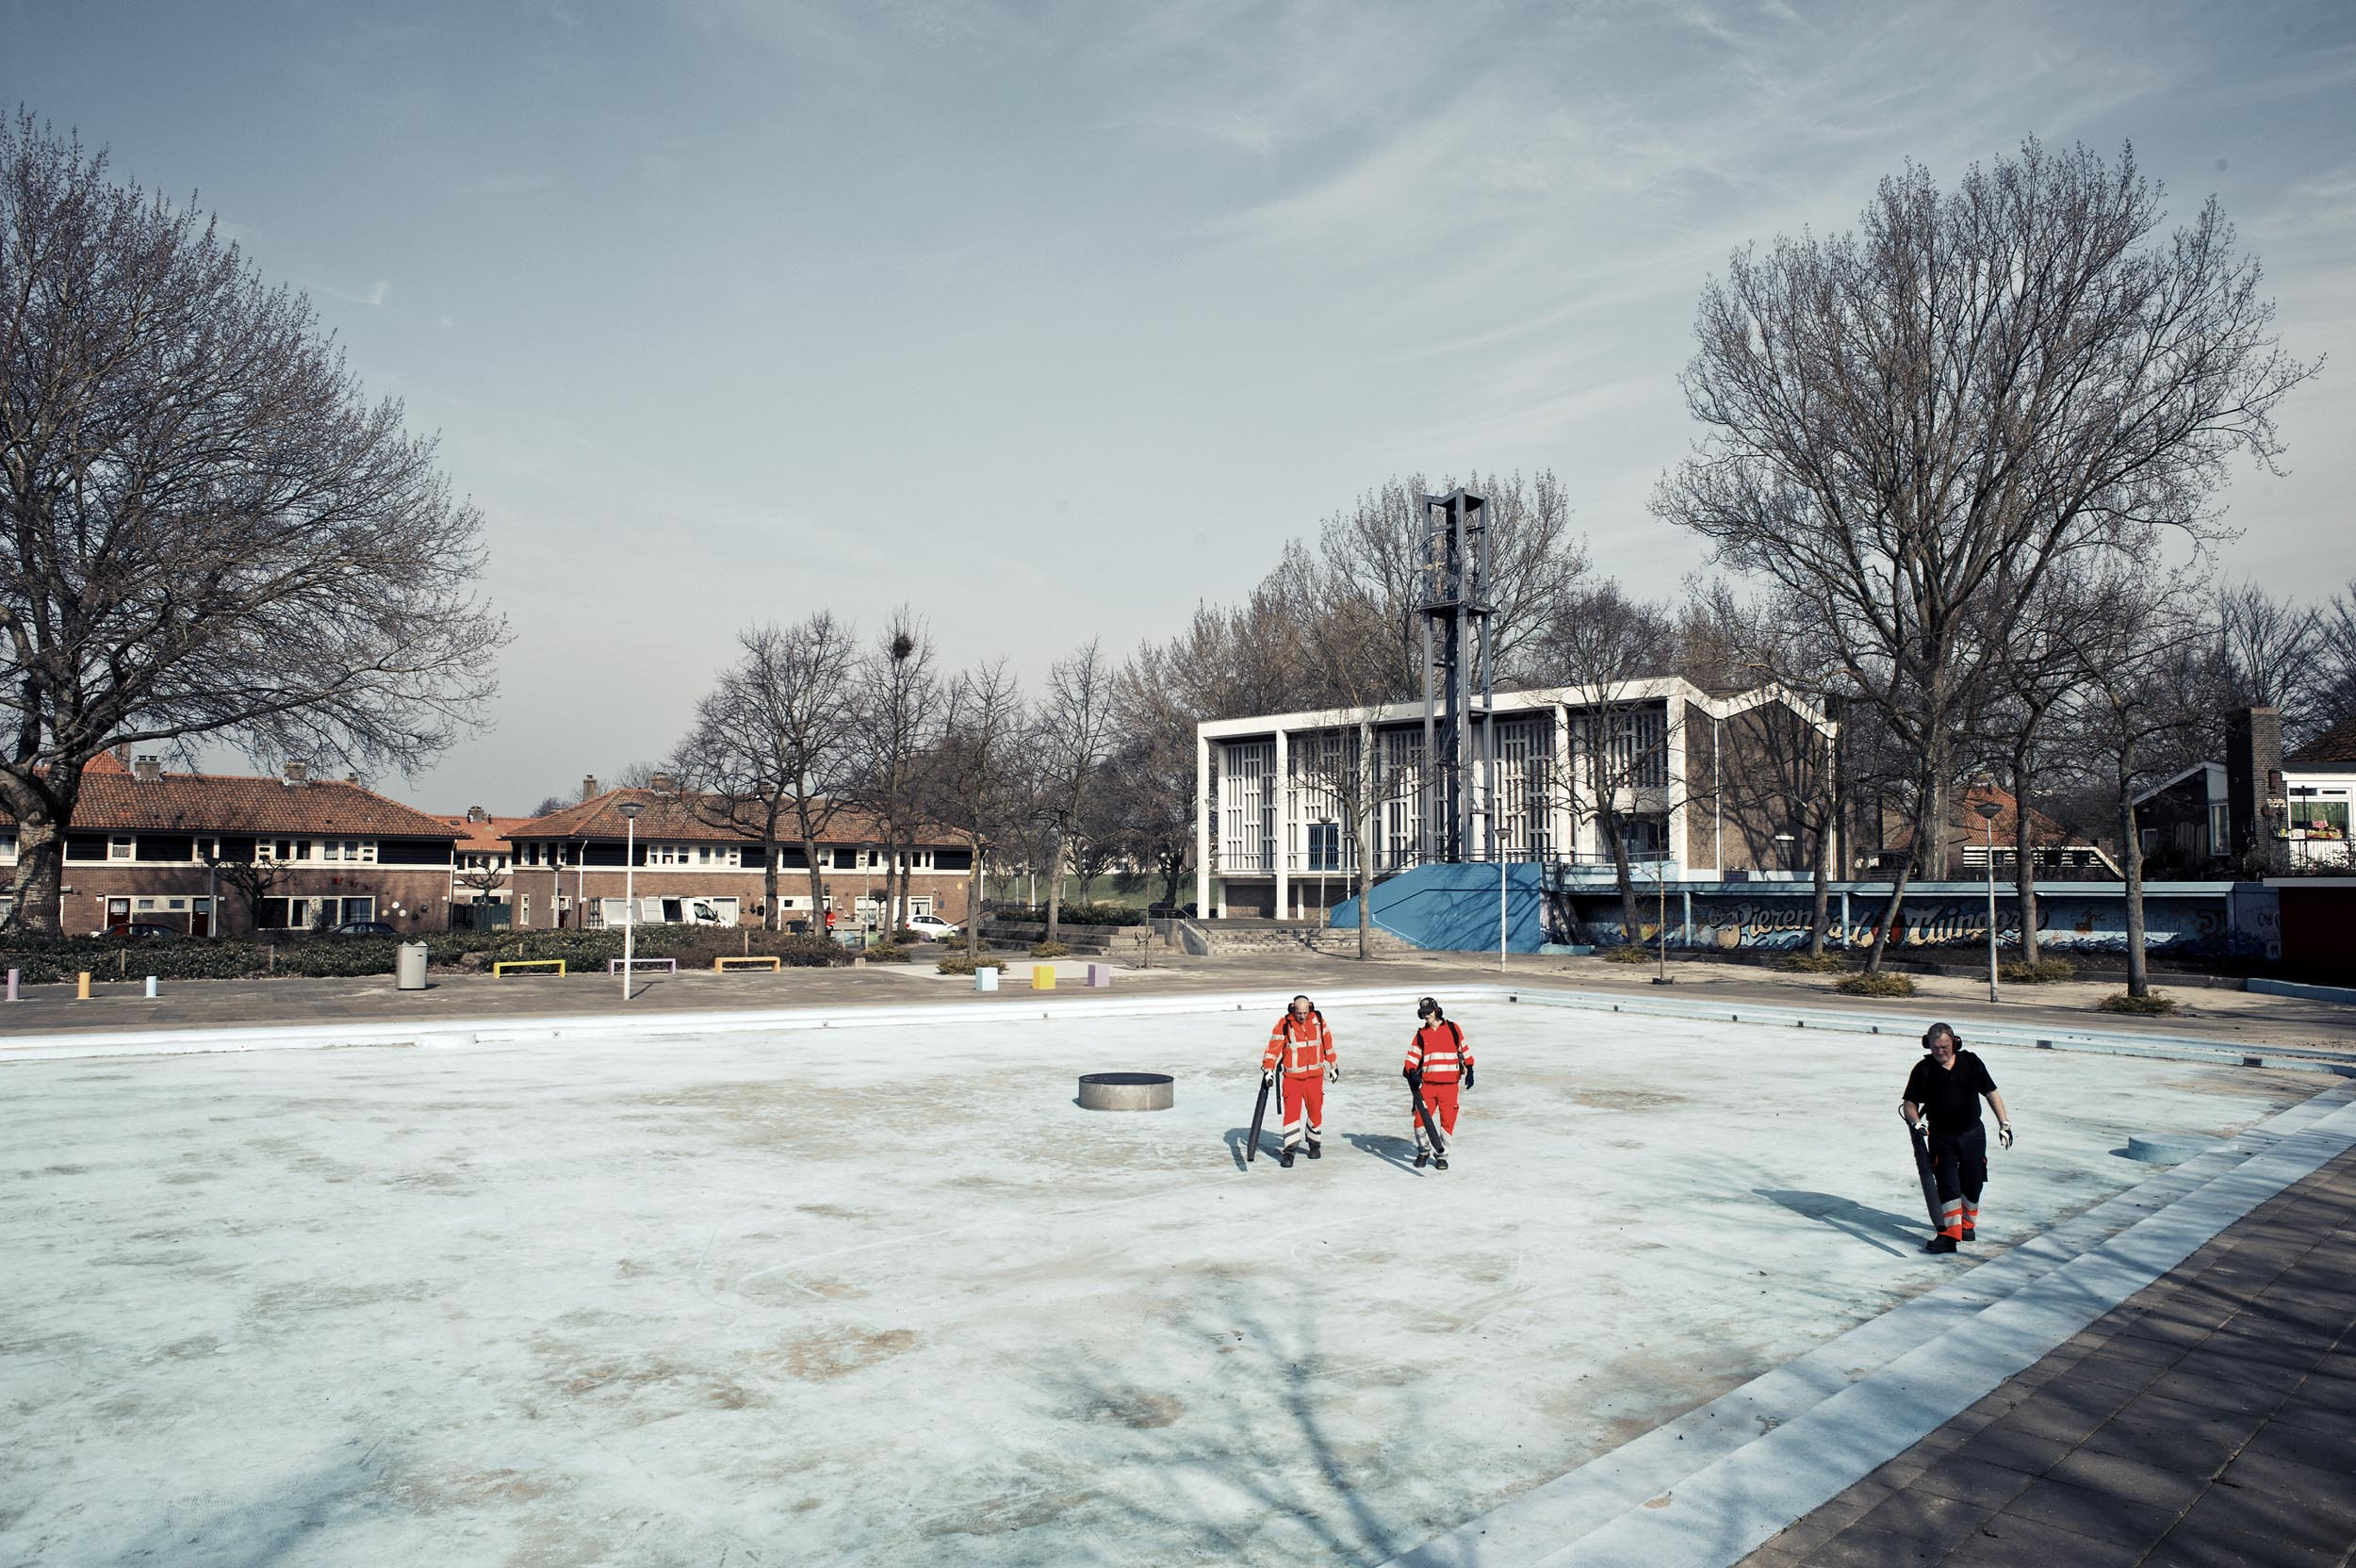 ⎯ The Plejaden pool in Amsterdam-Tuindorp is being prepared for the next sunny season.